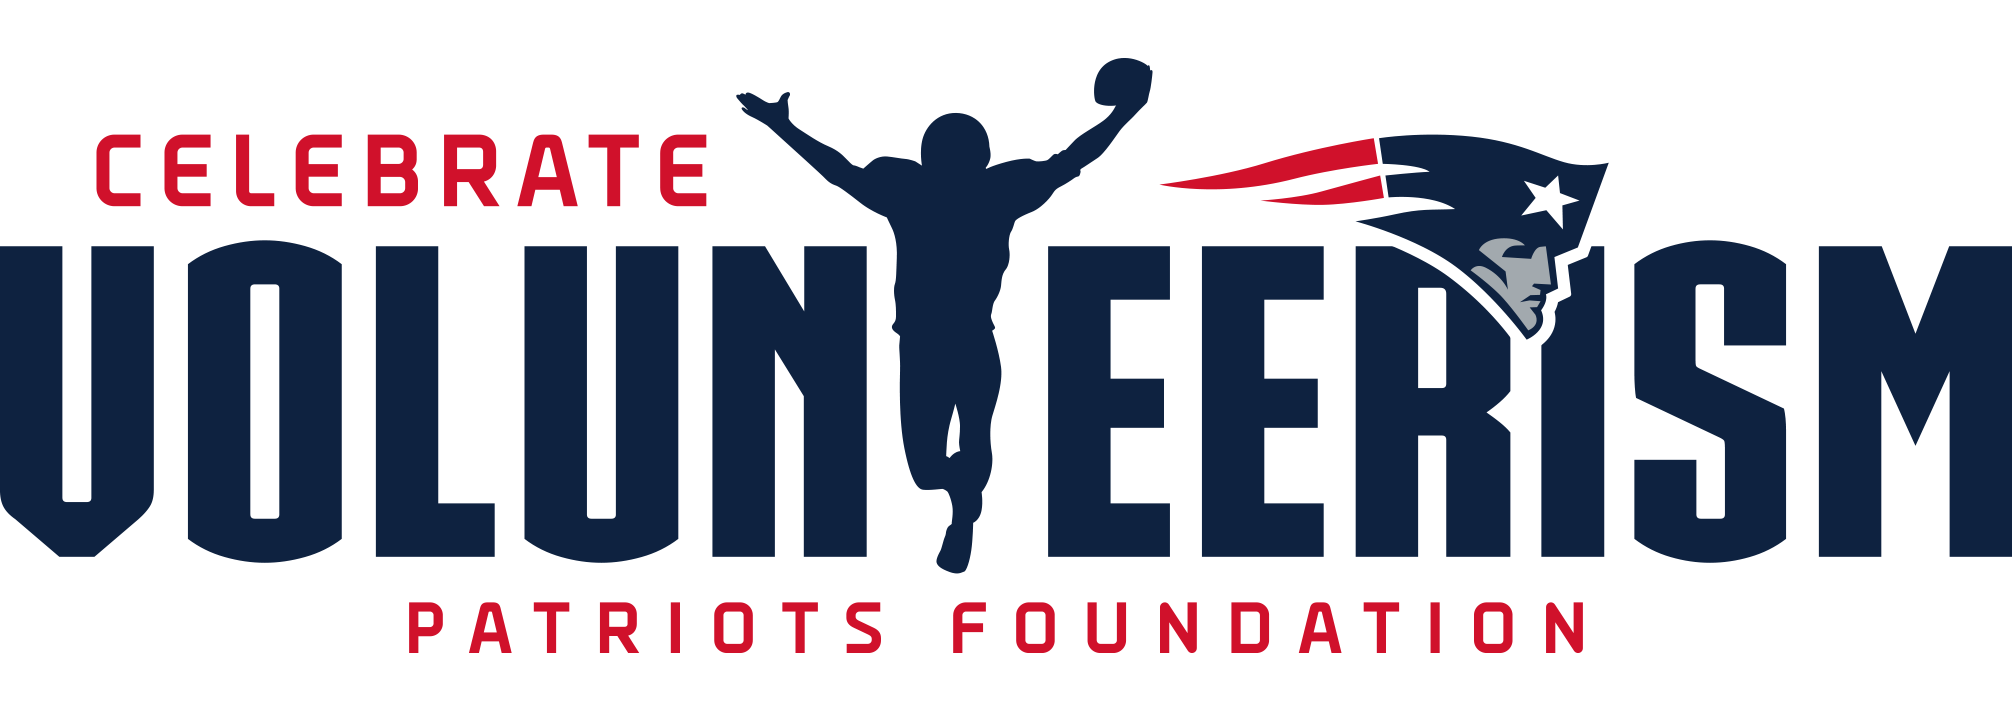 Patriots Charitable Foundation Celebrating Volunteerism Logo